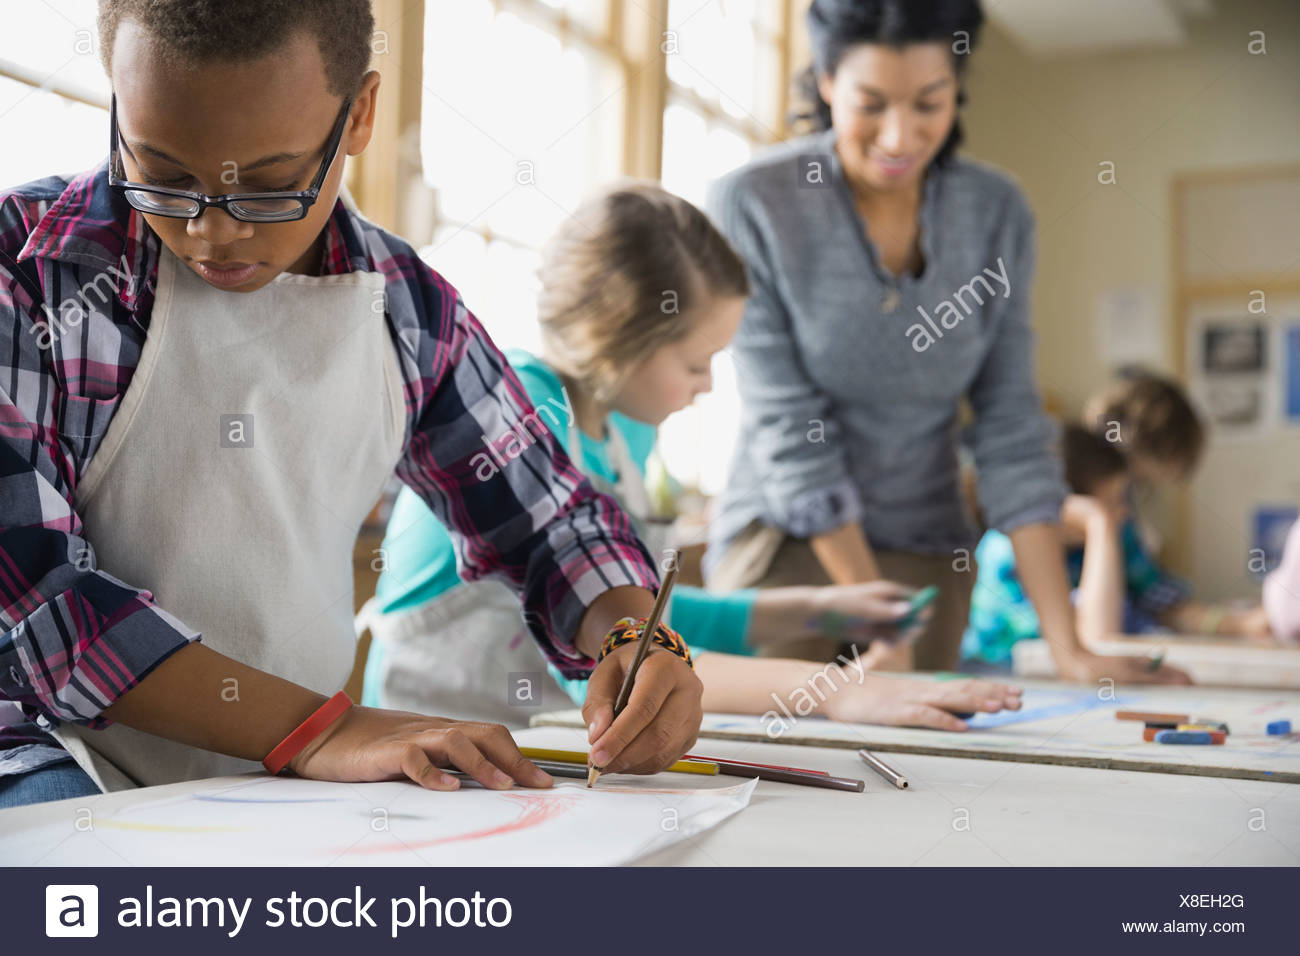 Boy drawing in art class - Stock Image